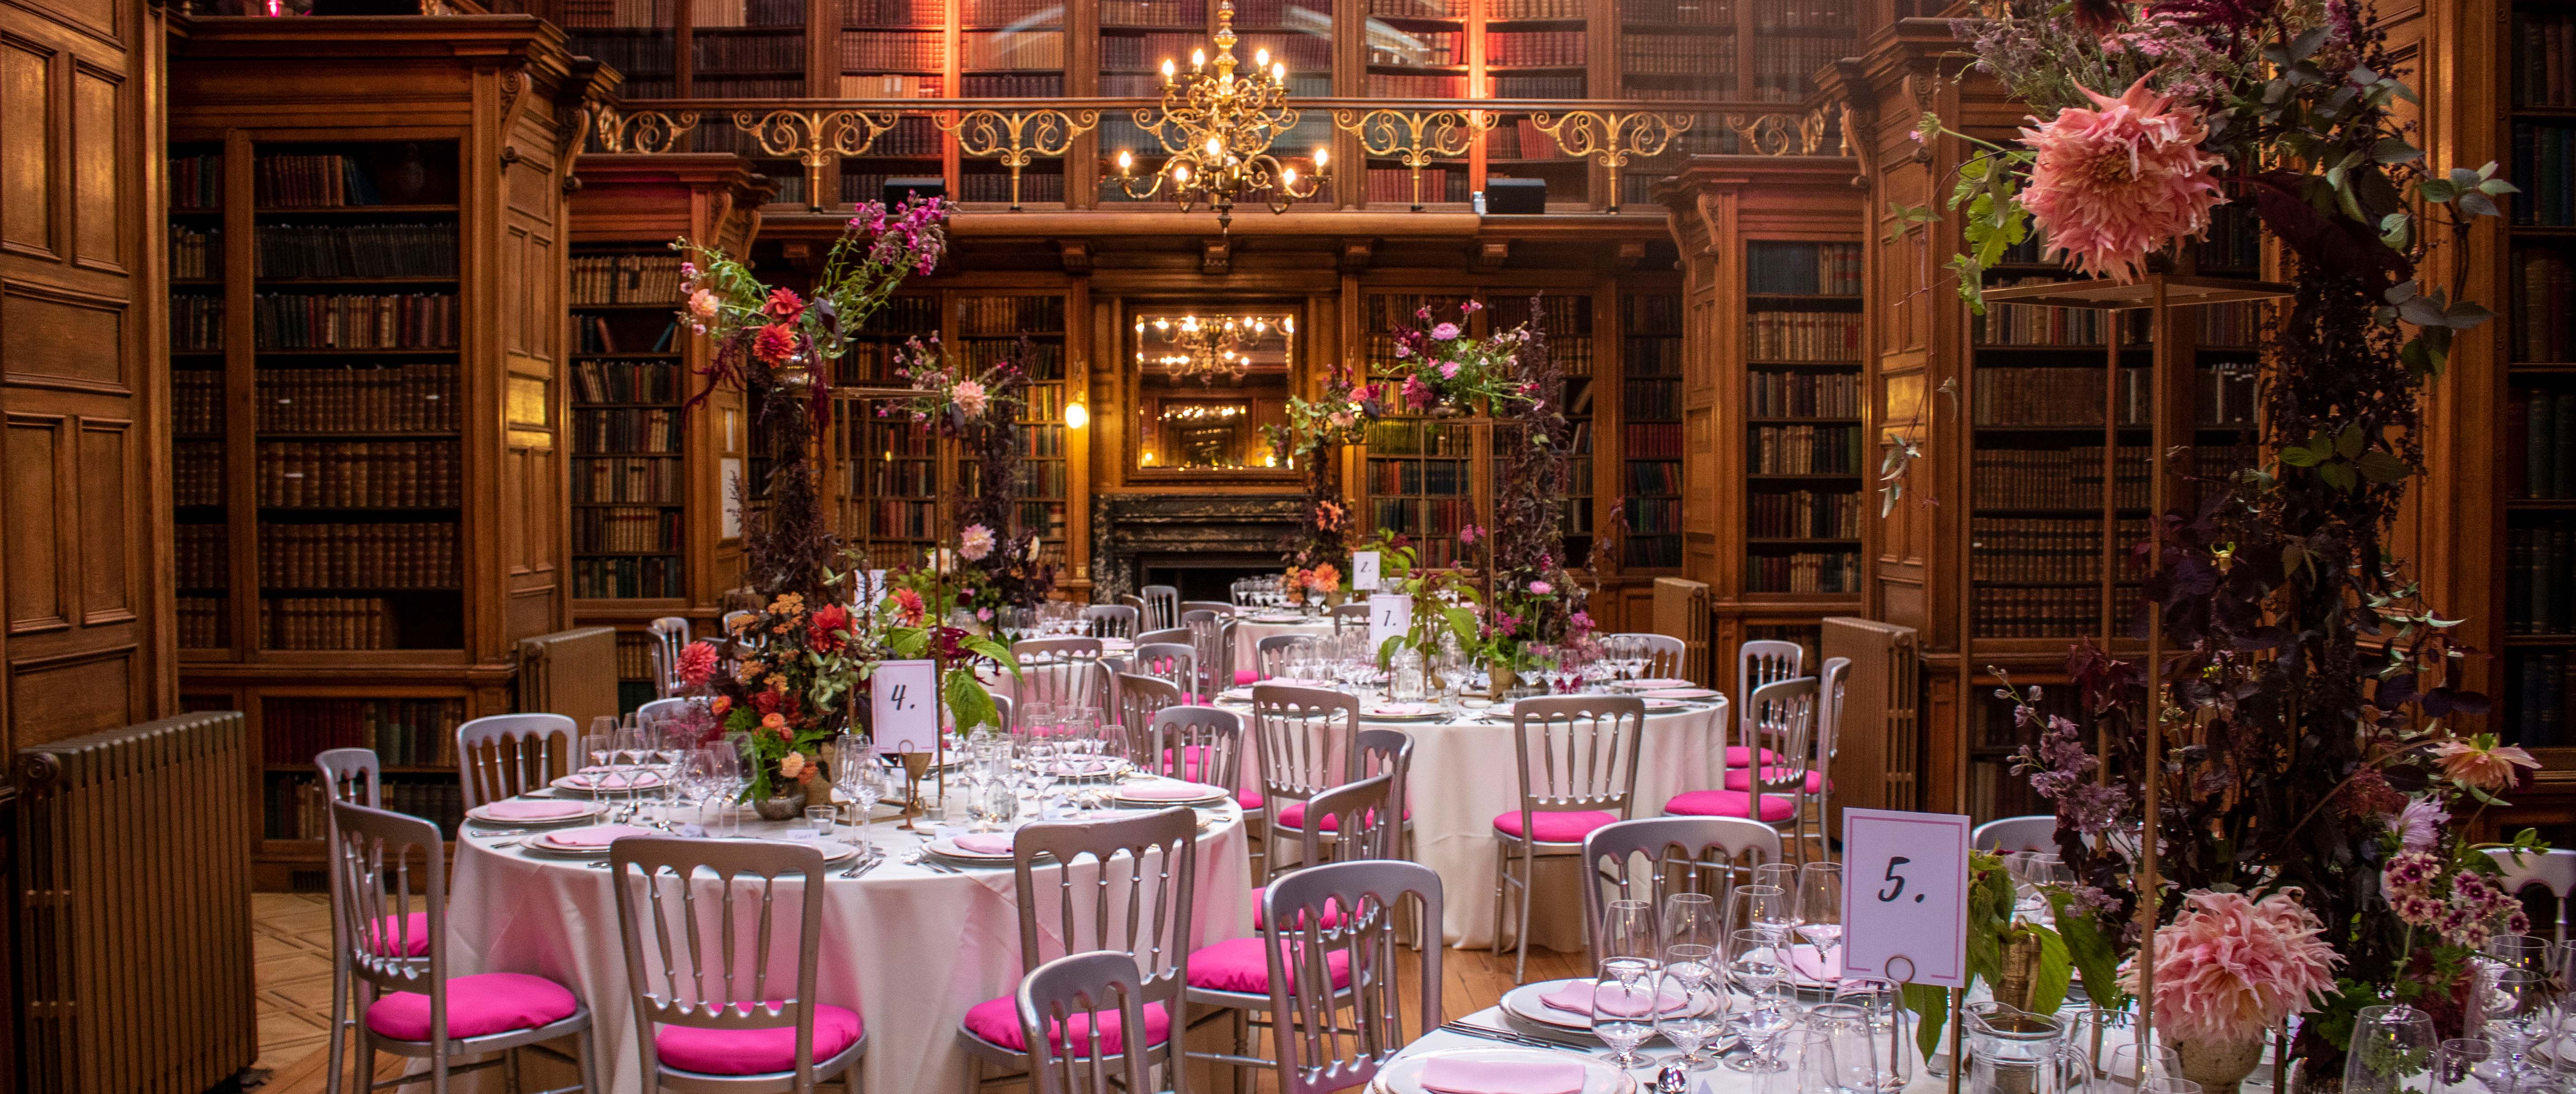 Private Event : Glamorous and Intimate Celebration